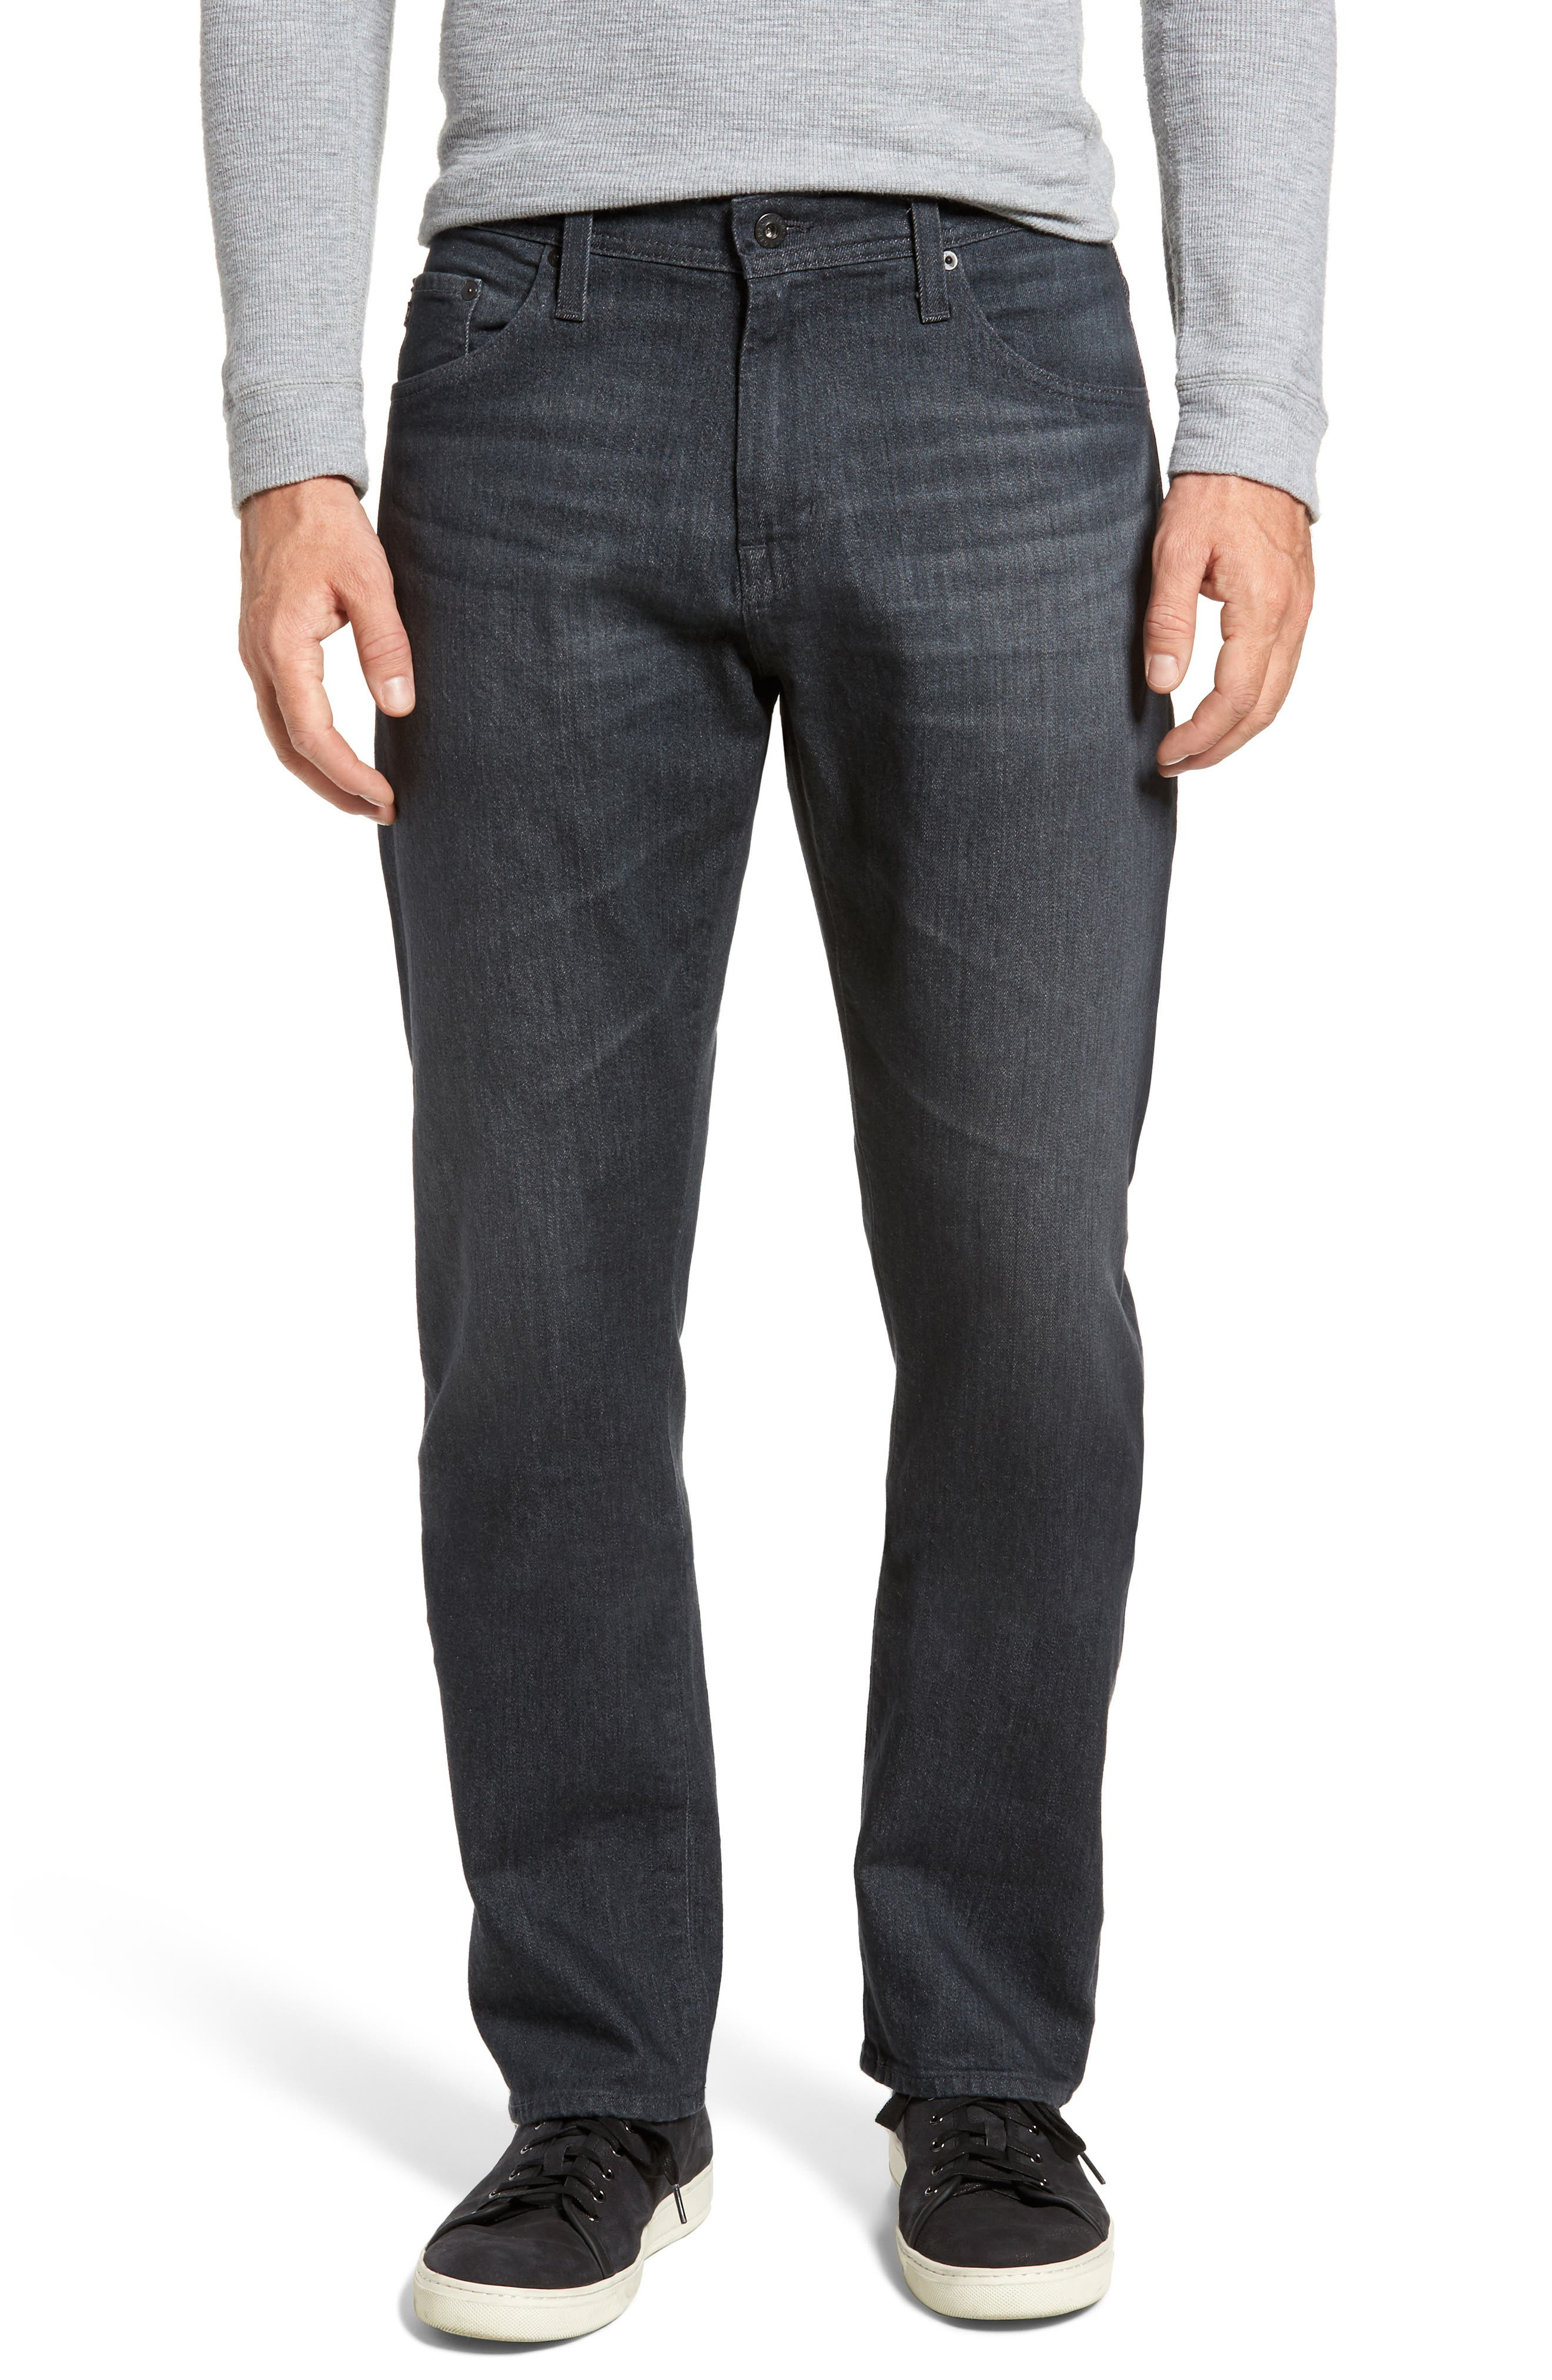 Ives Straight Fit Jeans,                             Main thumbnail 1, color,                             015